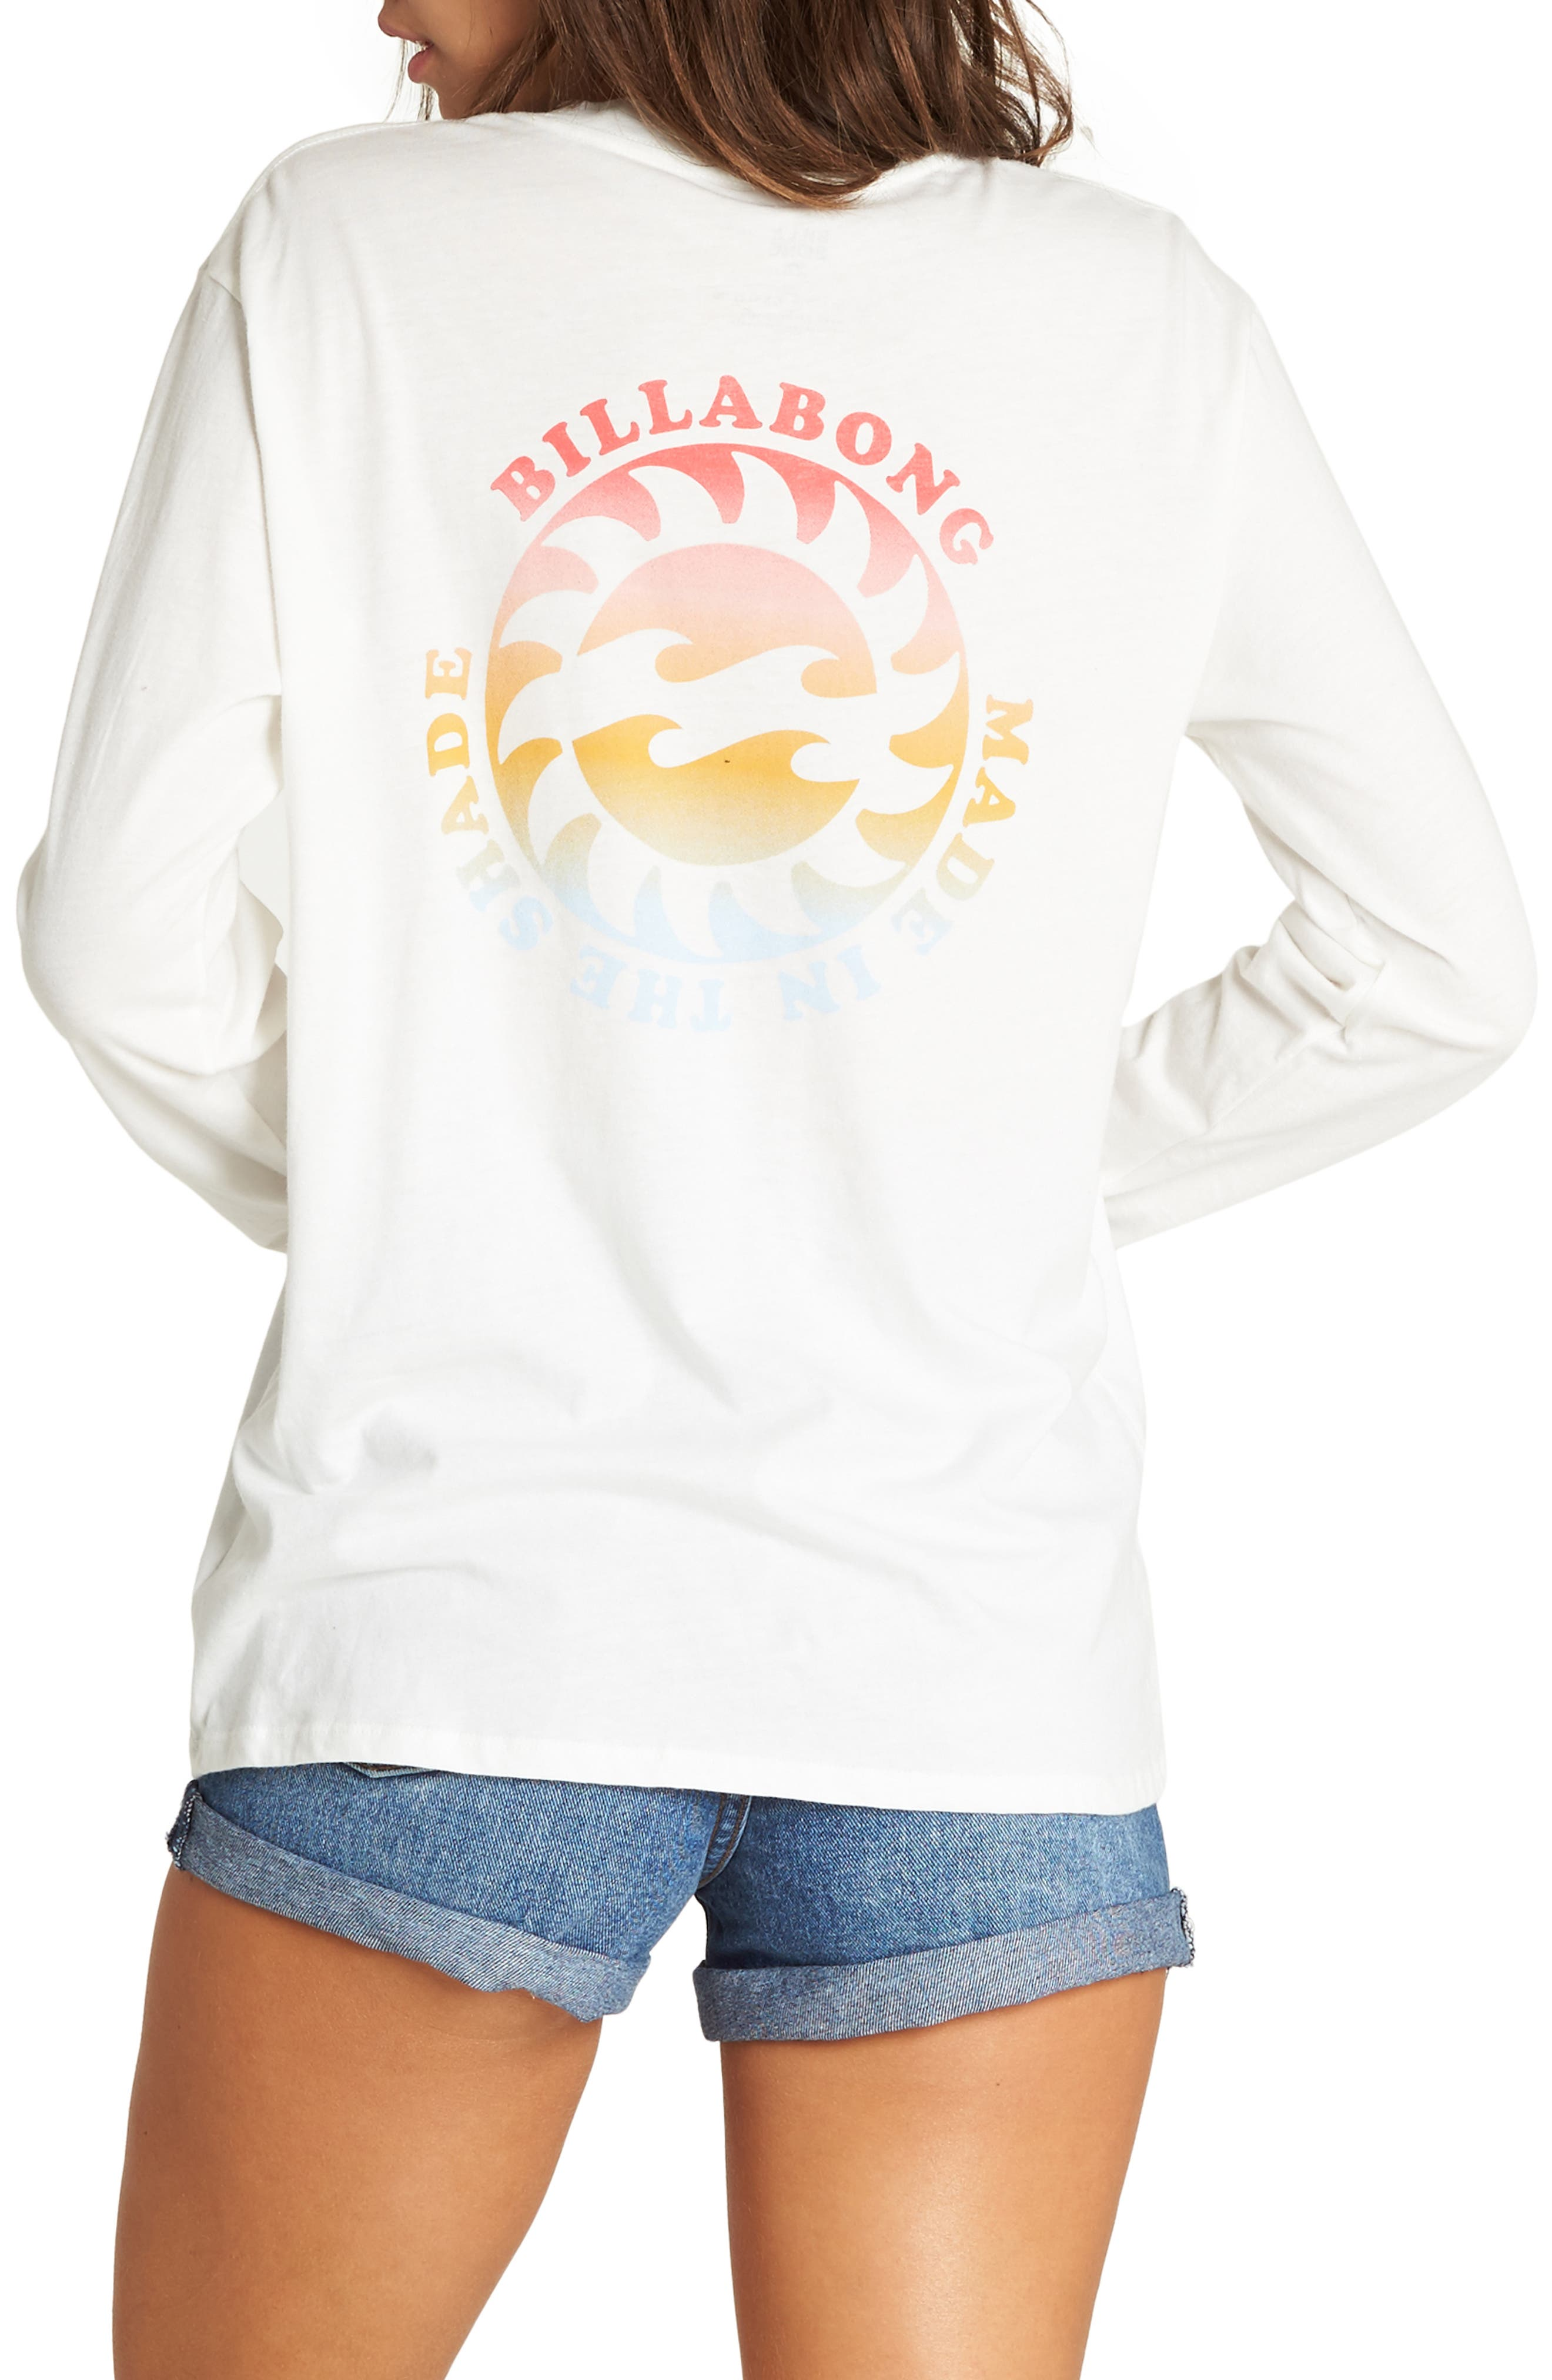 BILLABONG Made in the Shade Graphic Tee, Main, color, 190